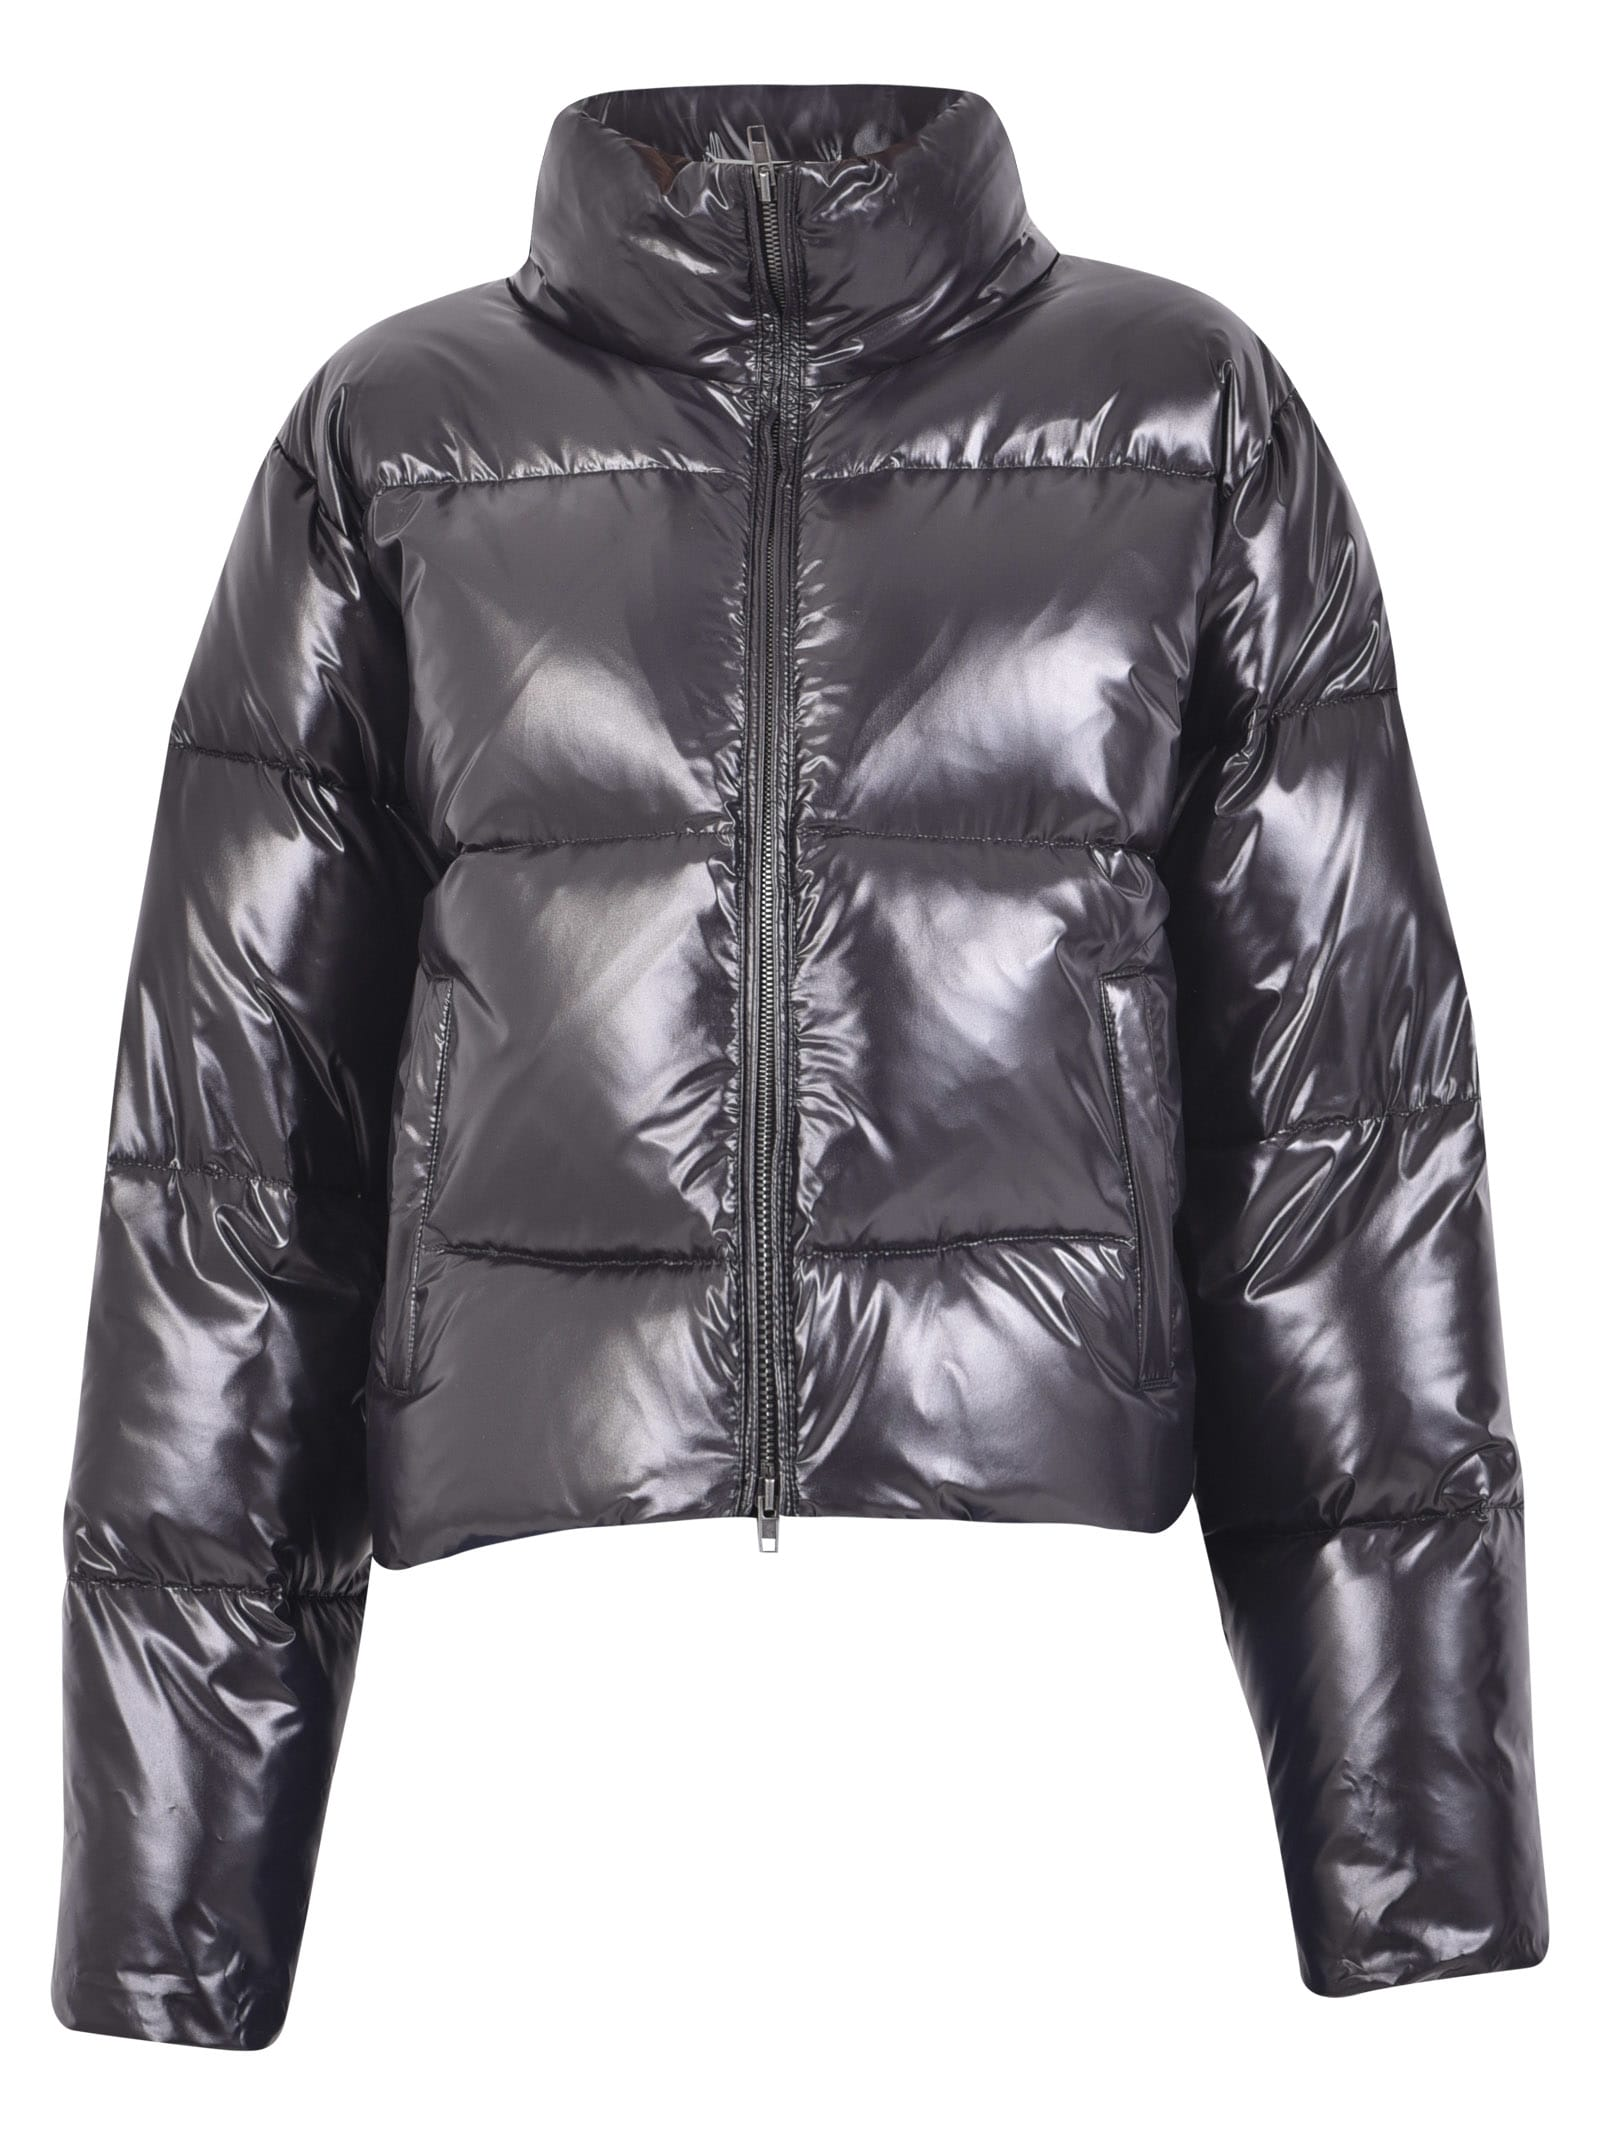 Maison Margiela Cropped Padded Jacket